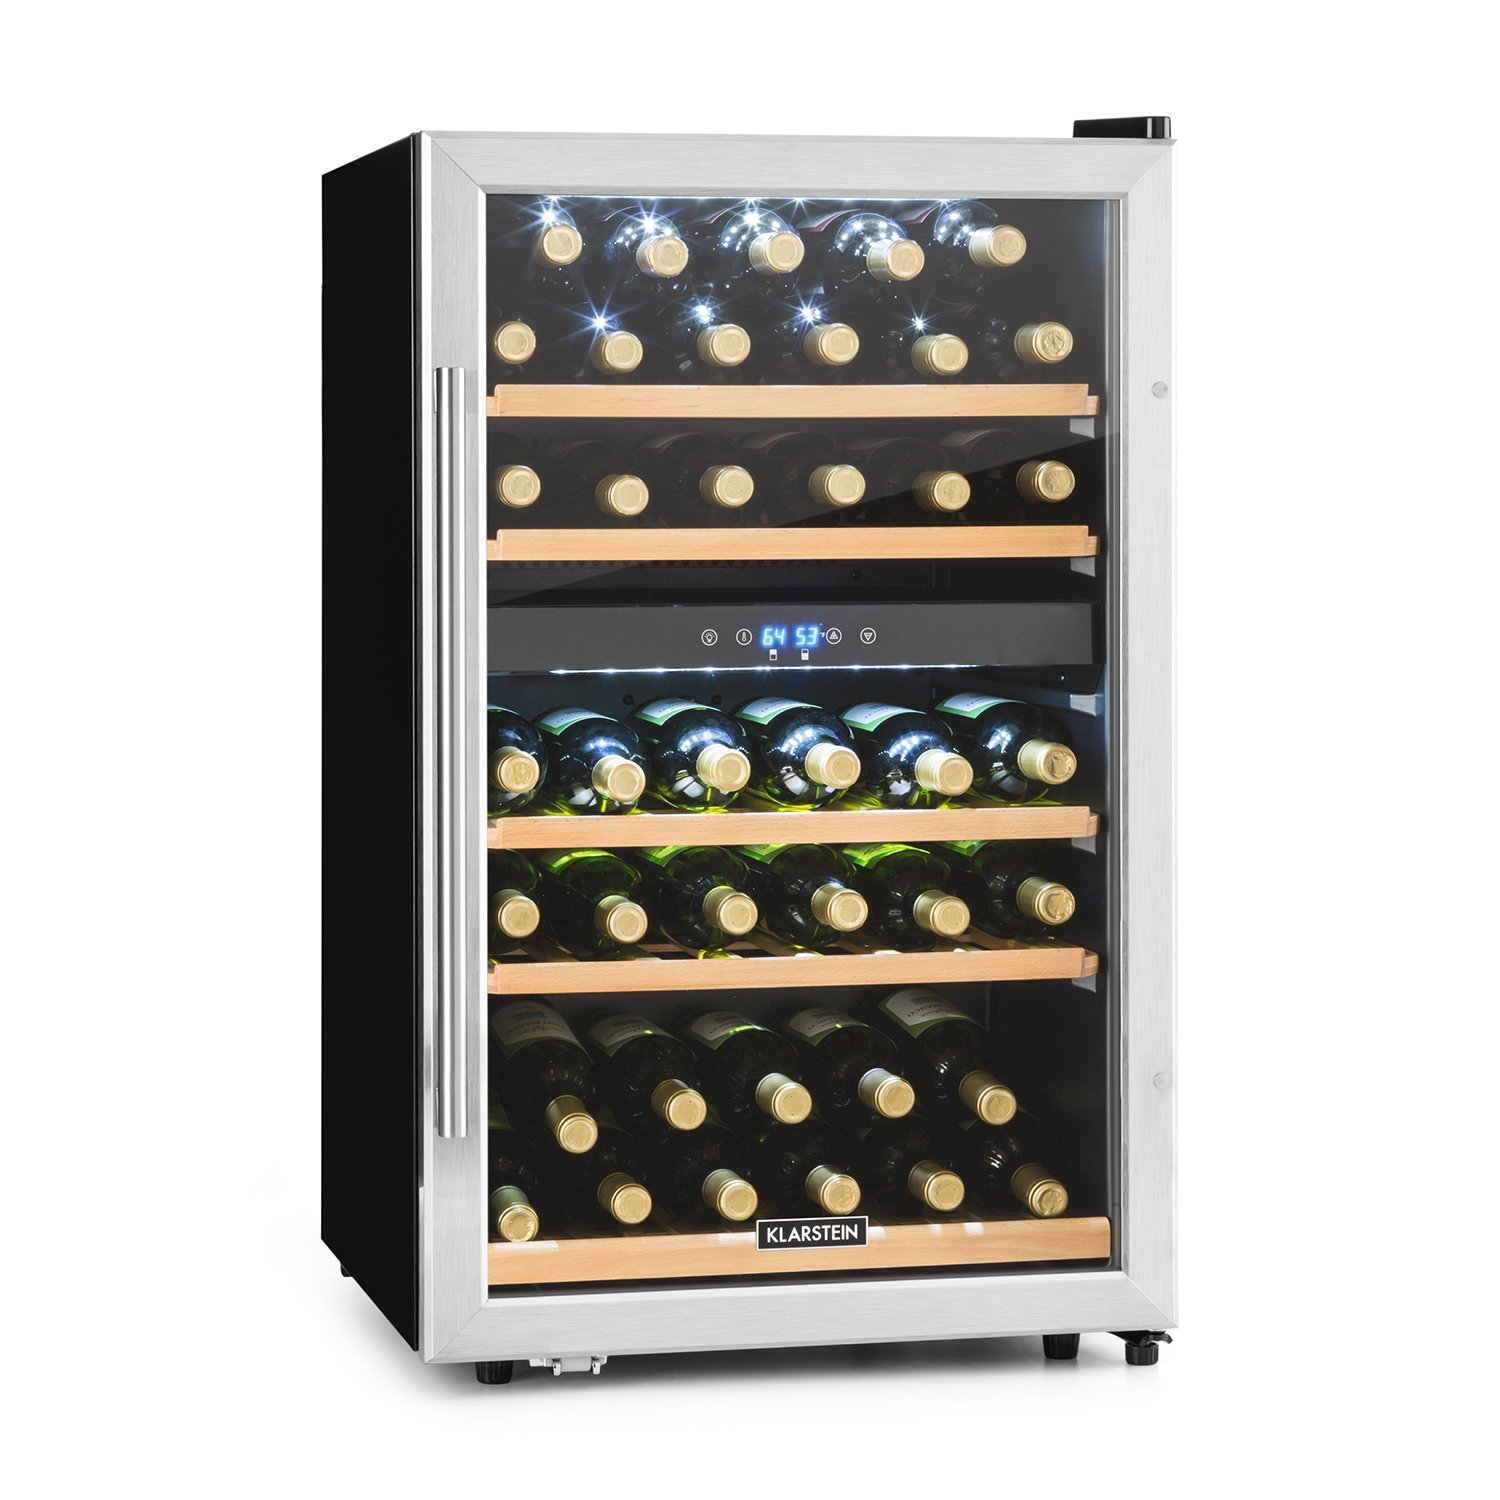 KLARSTEIN Vinamour 40D Wine Refrigerator • Beverage Cooler • Fridge • 2 Cooling Zones • 4.8 Cubic Feet • LCD-Display • Stainless Steel Front • Touch Control Panel • 5 removable Shelf Racks • Silver